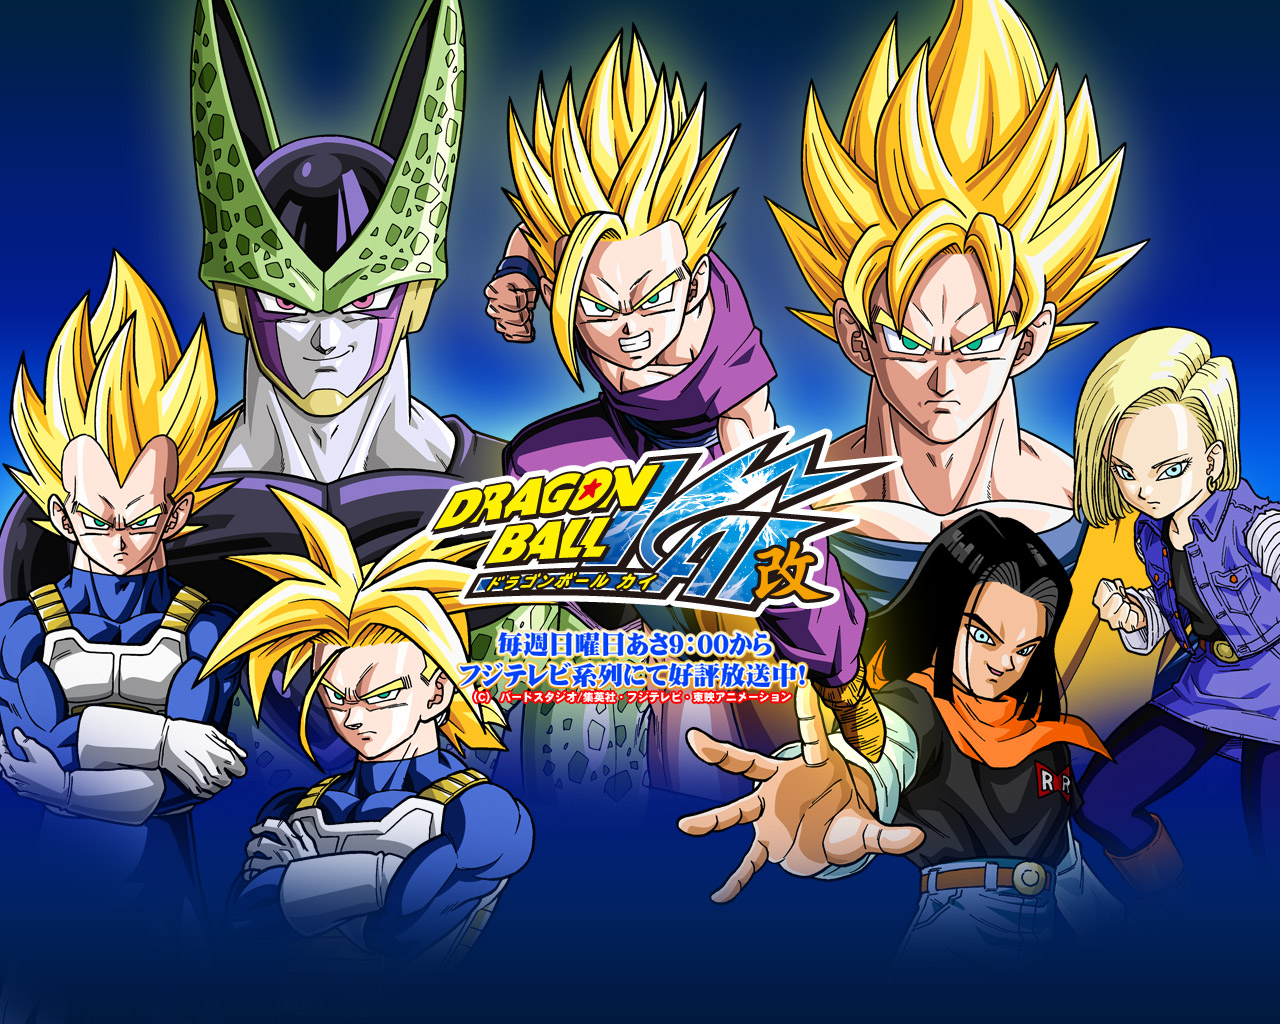 http://4.bp.blogspot.com/-V1-G7mb_8vg/T0xygEaEX-I/AAAAAAAAAAM/5v__CZ74CVc/s1600/1280x1024_wallpaper_dragon_ball_kai.jpg